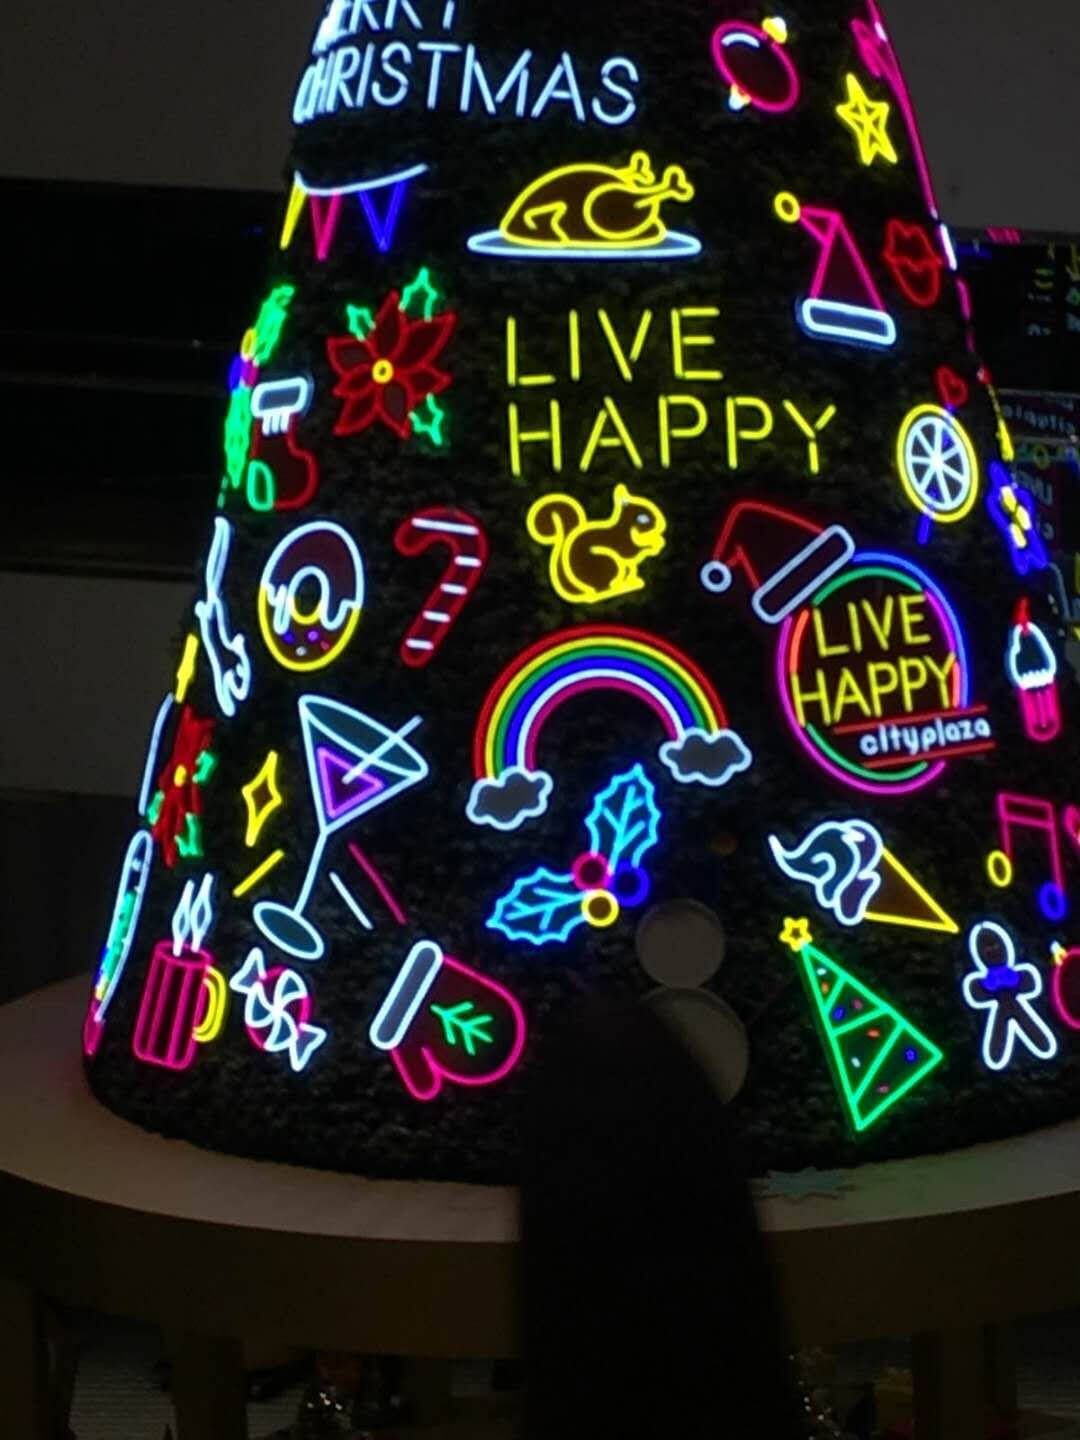 Handmade Ice Cream Neon Signs, LED Neon Light Sign Boards with Remote Control Home Beer Bar Pub Recreation Room Game Lights Windows Garage Wall Signs (Ice Cream Neon Sign)